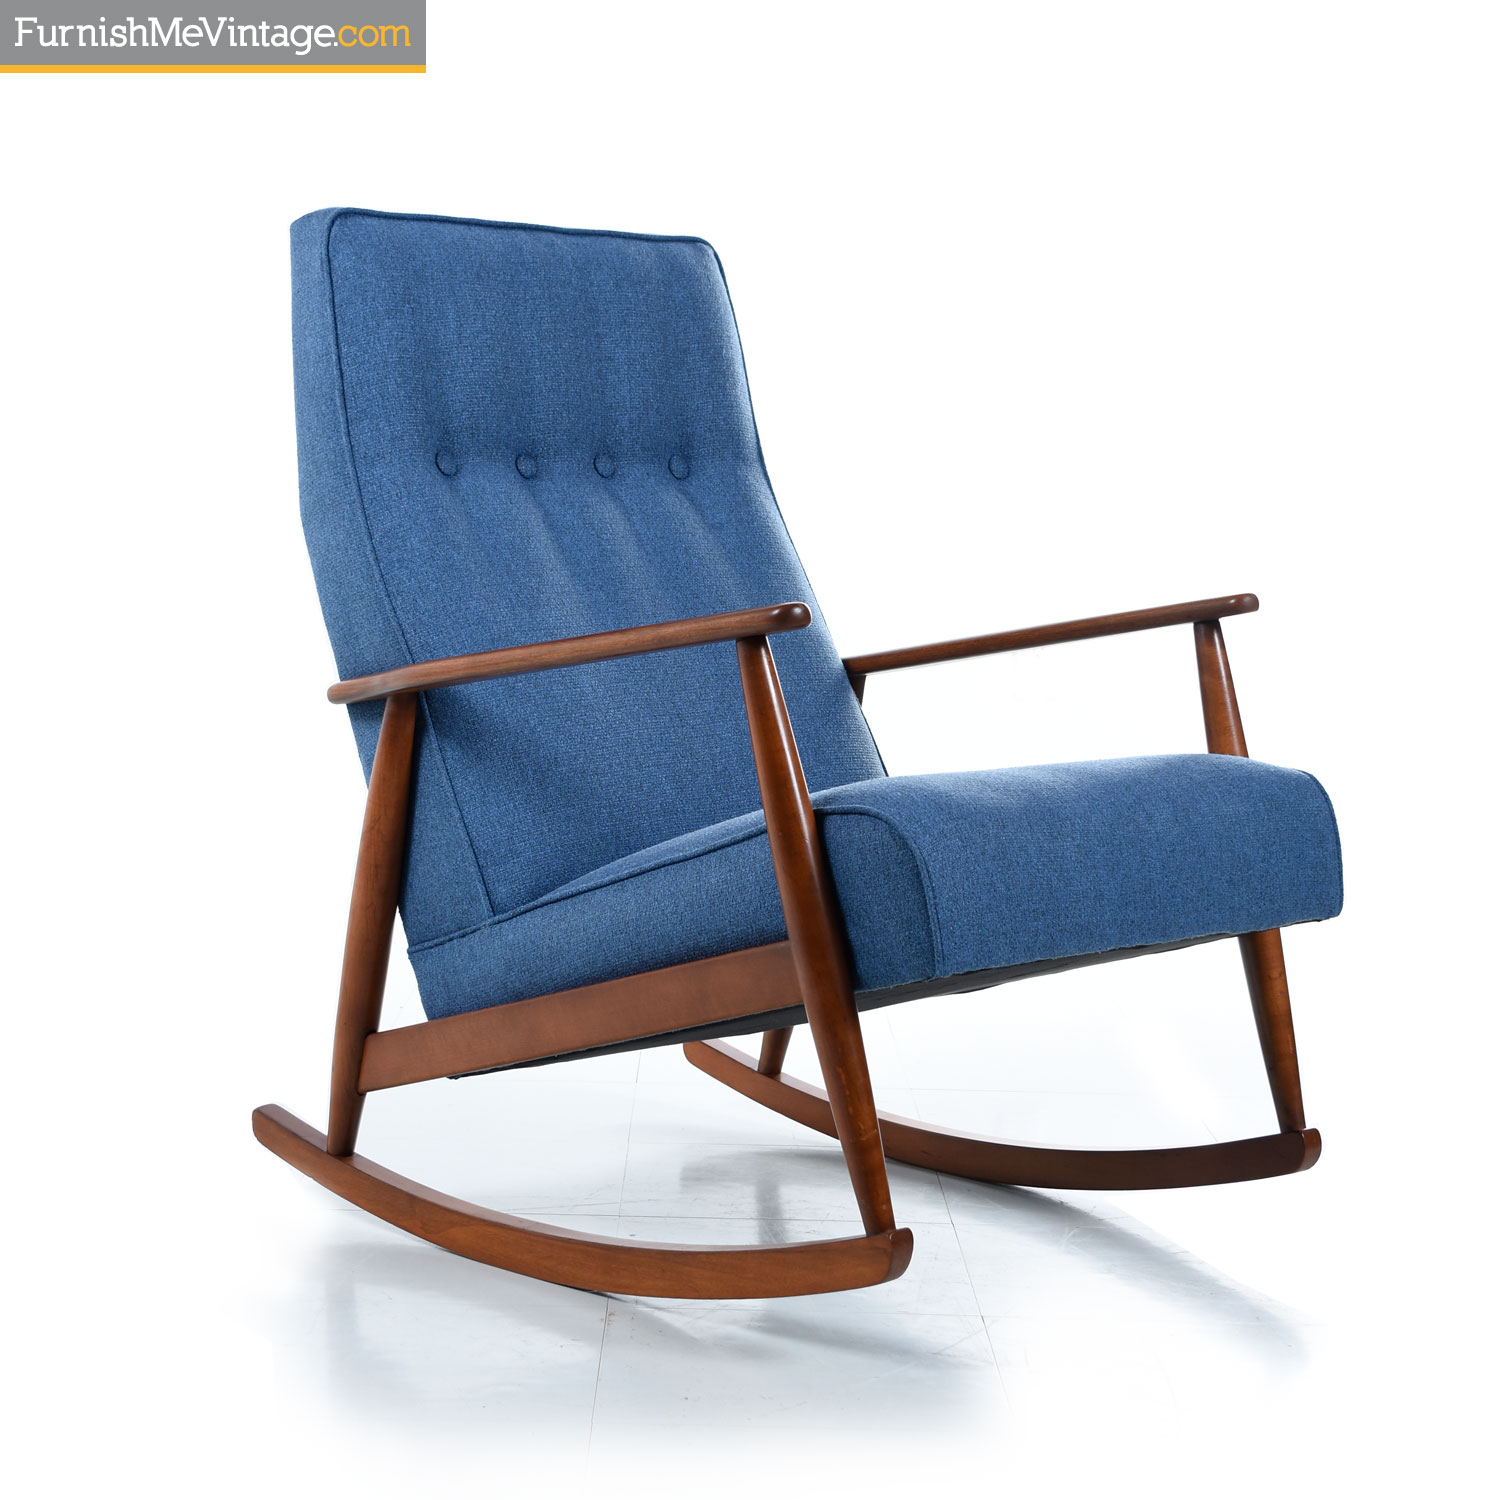 Astounding German Beech Mid Century Modern Blue Rocking Chair Gmtry Best Dining Table And Chair Ideas Images Gmtryco